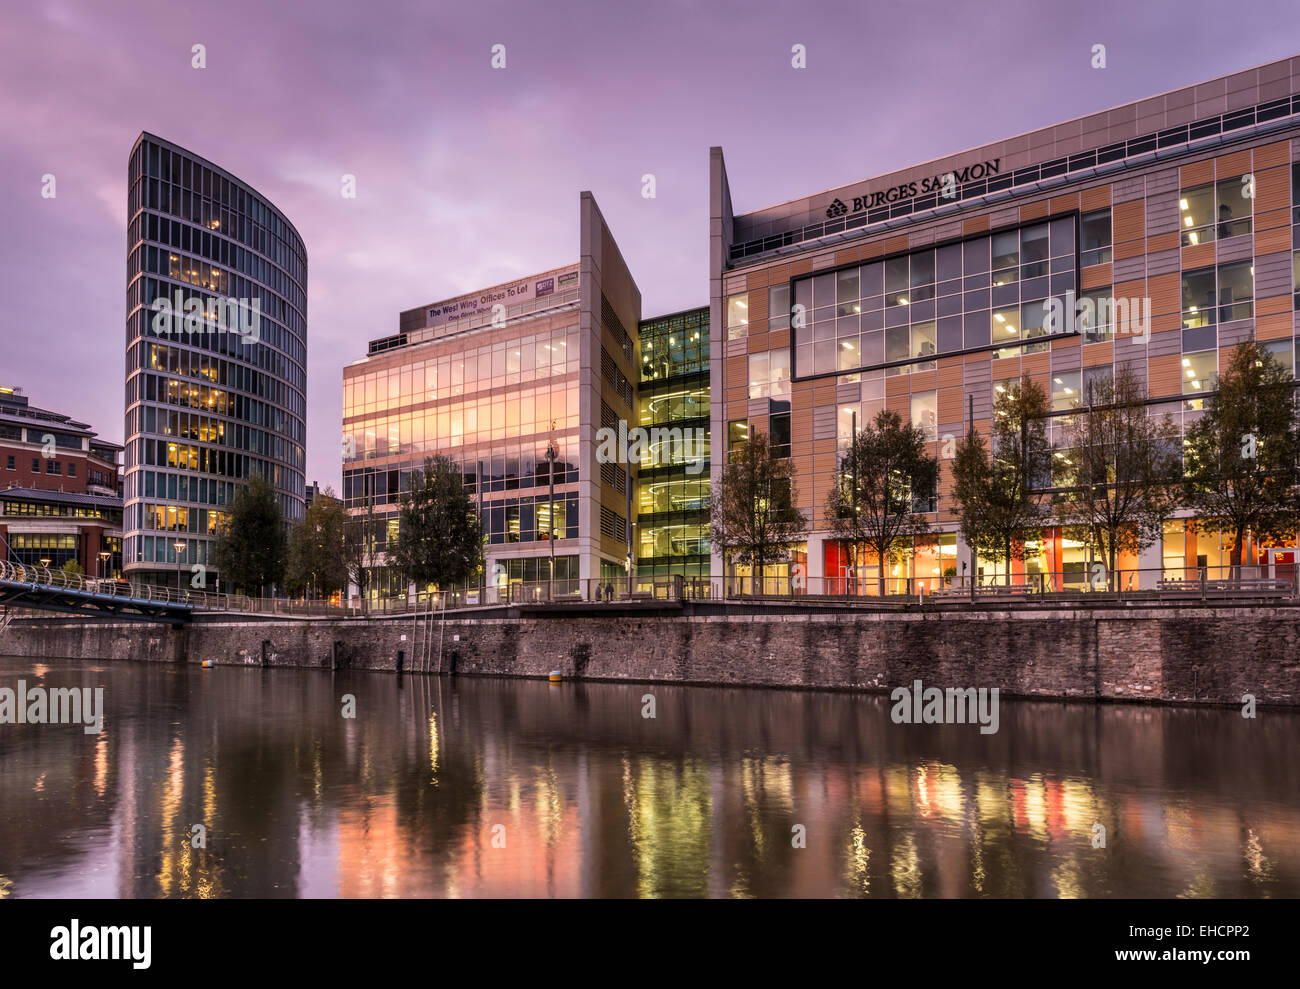 New development of apartments and offices in Temple Quay, Bristol, UK - Stock Image